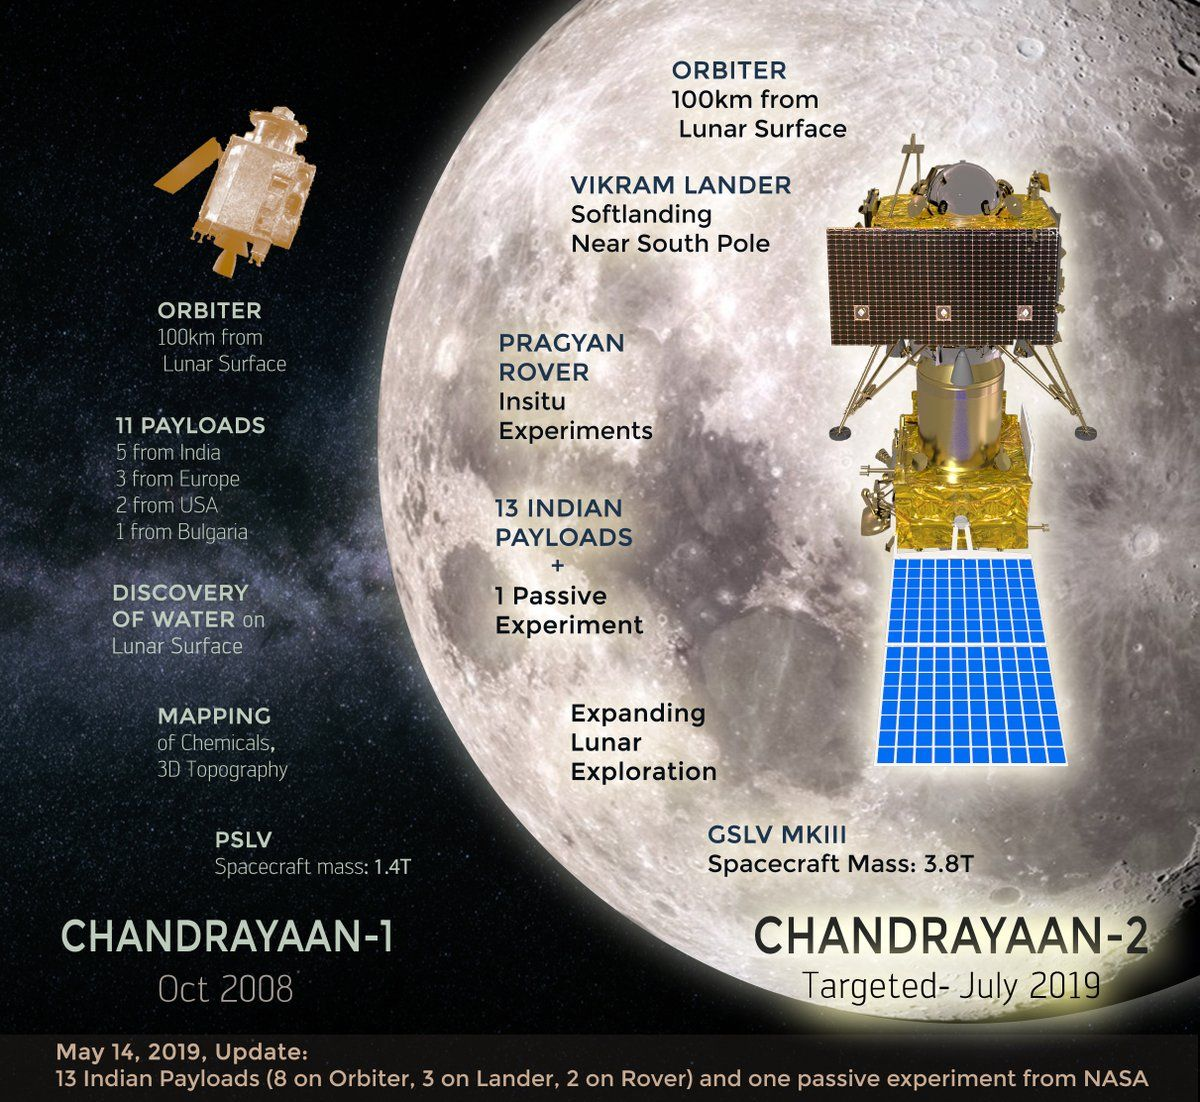 India Readies Chandrayaan-2 Moon Mission for July Launch